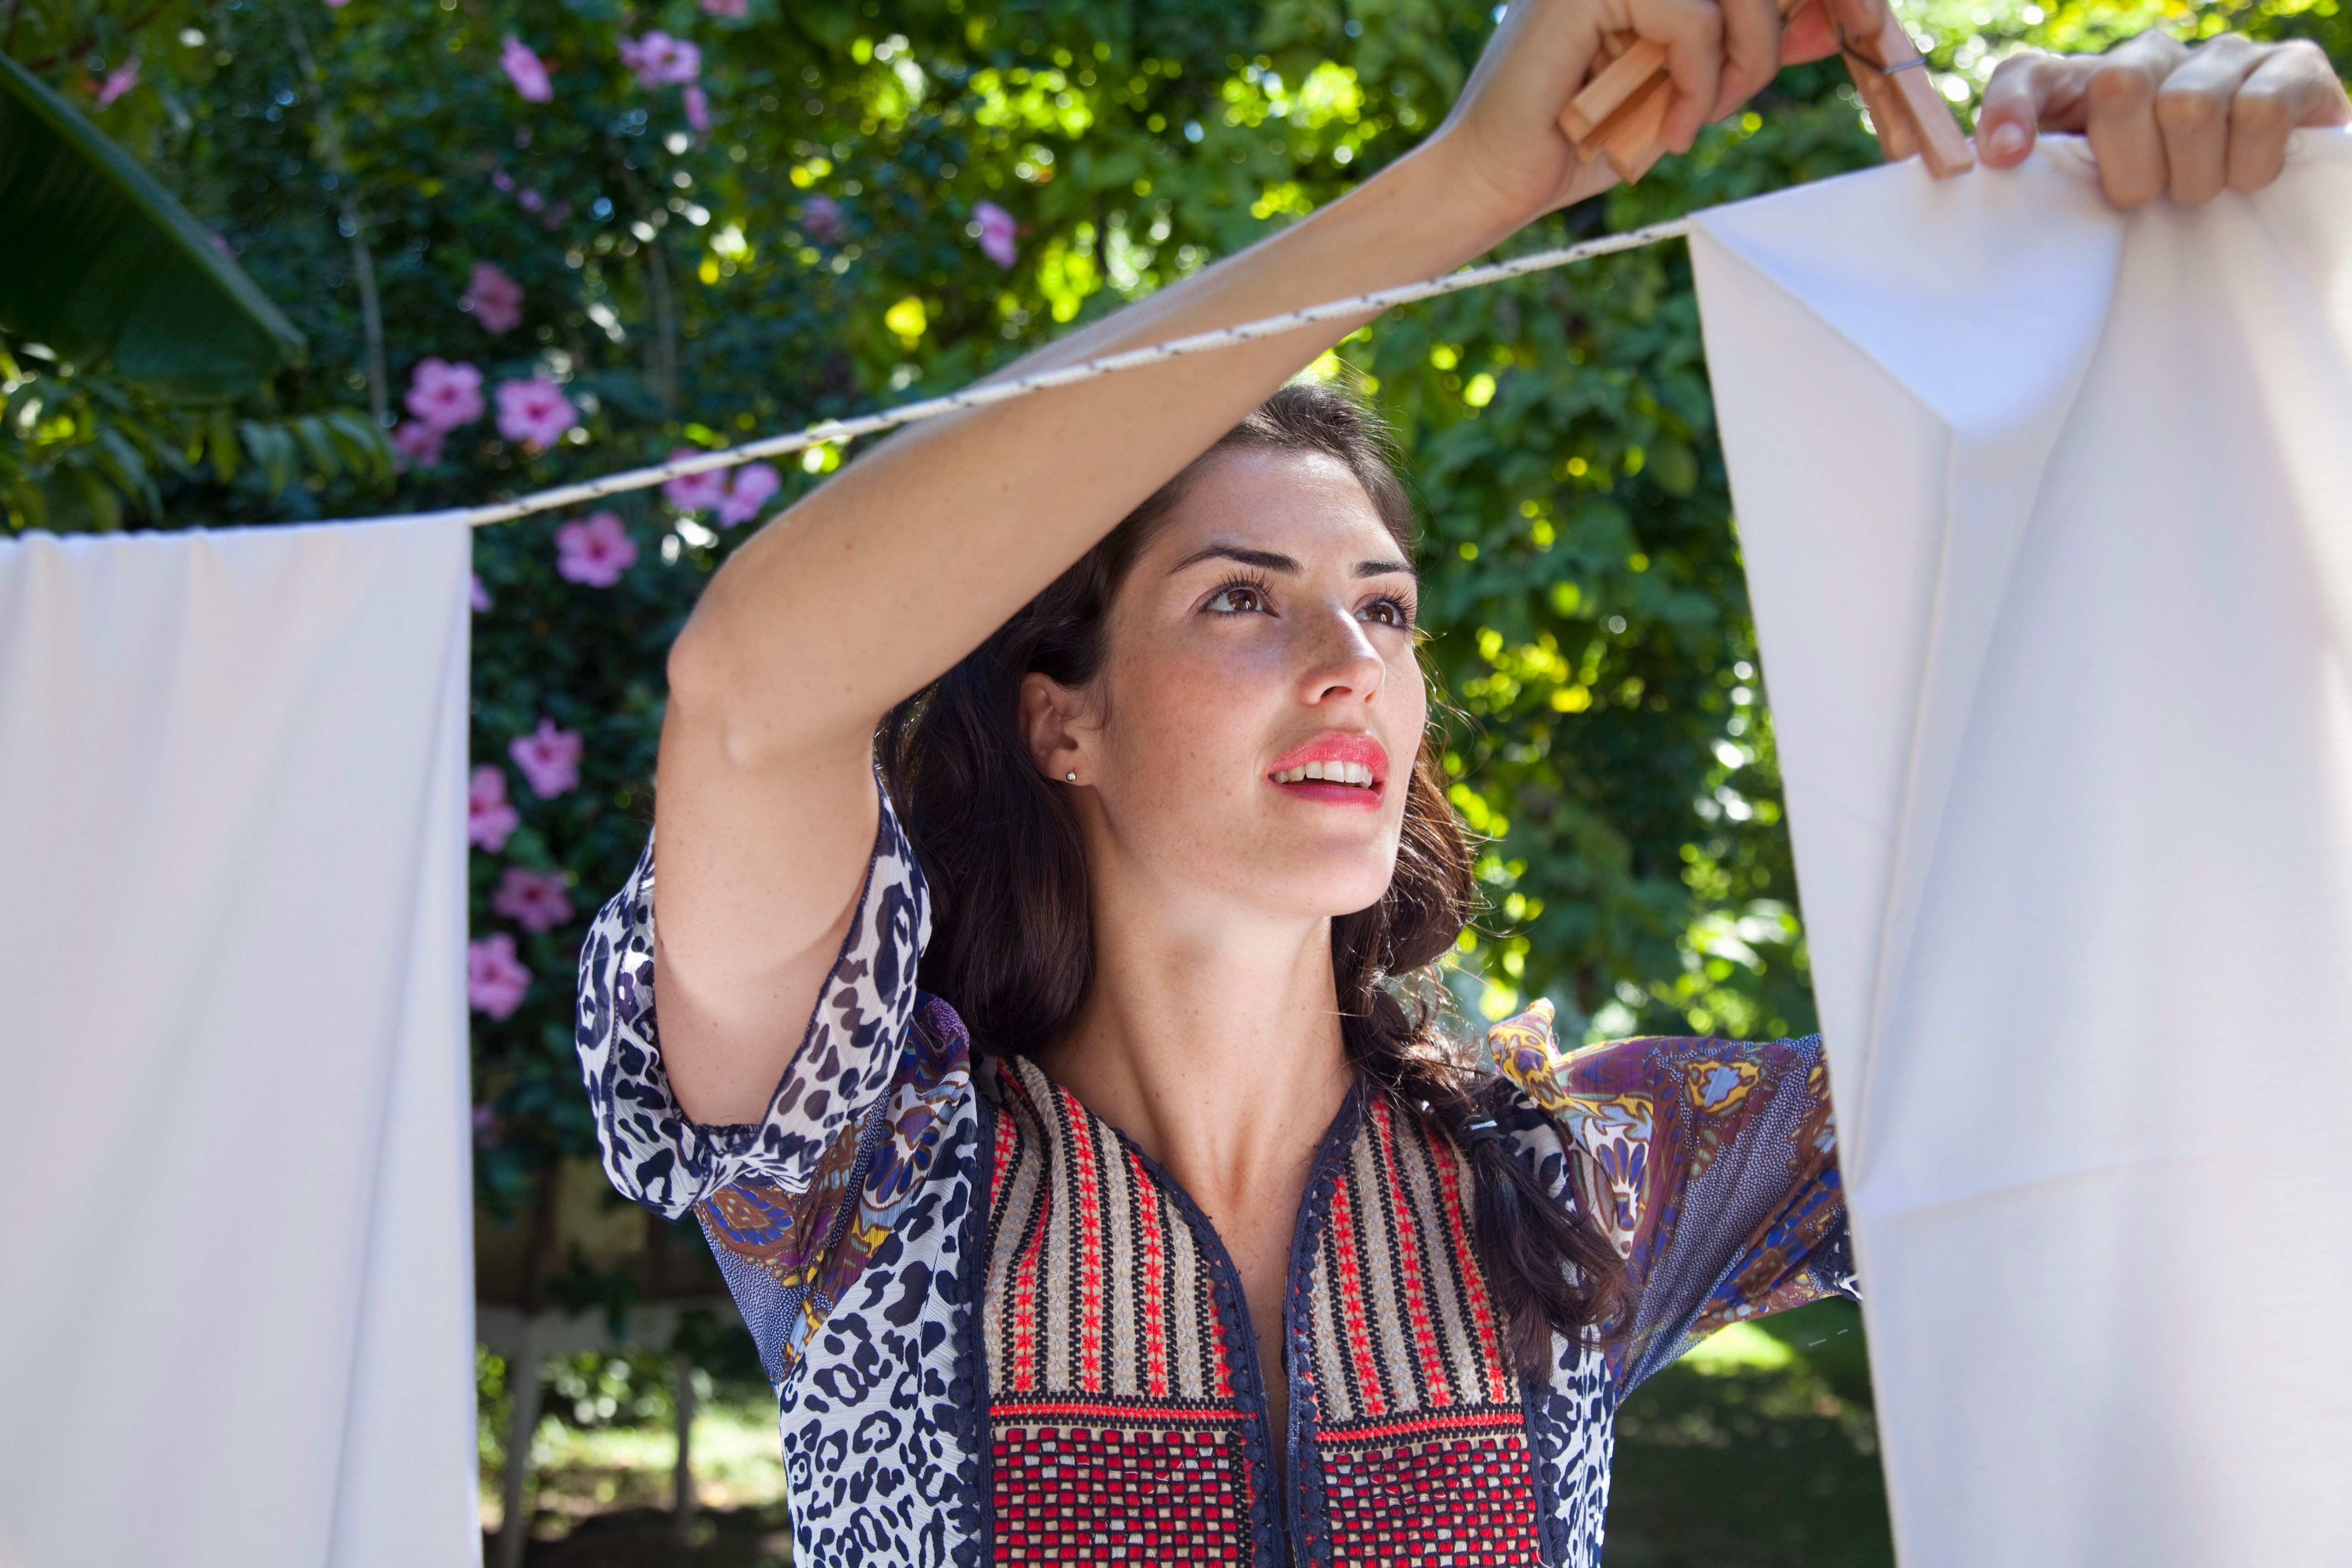 Woman hanging laundry on an outside clothesline.